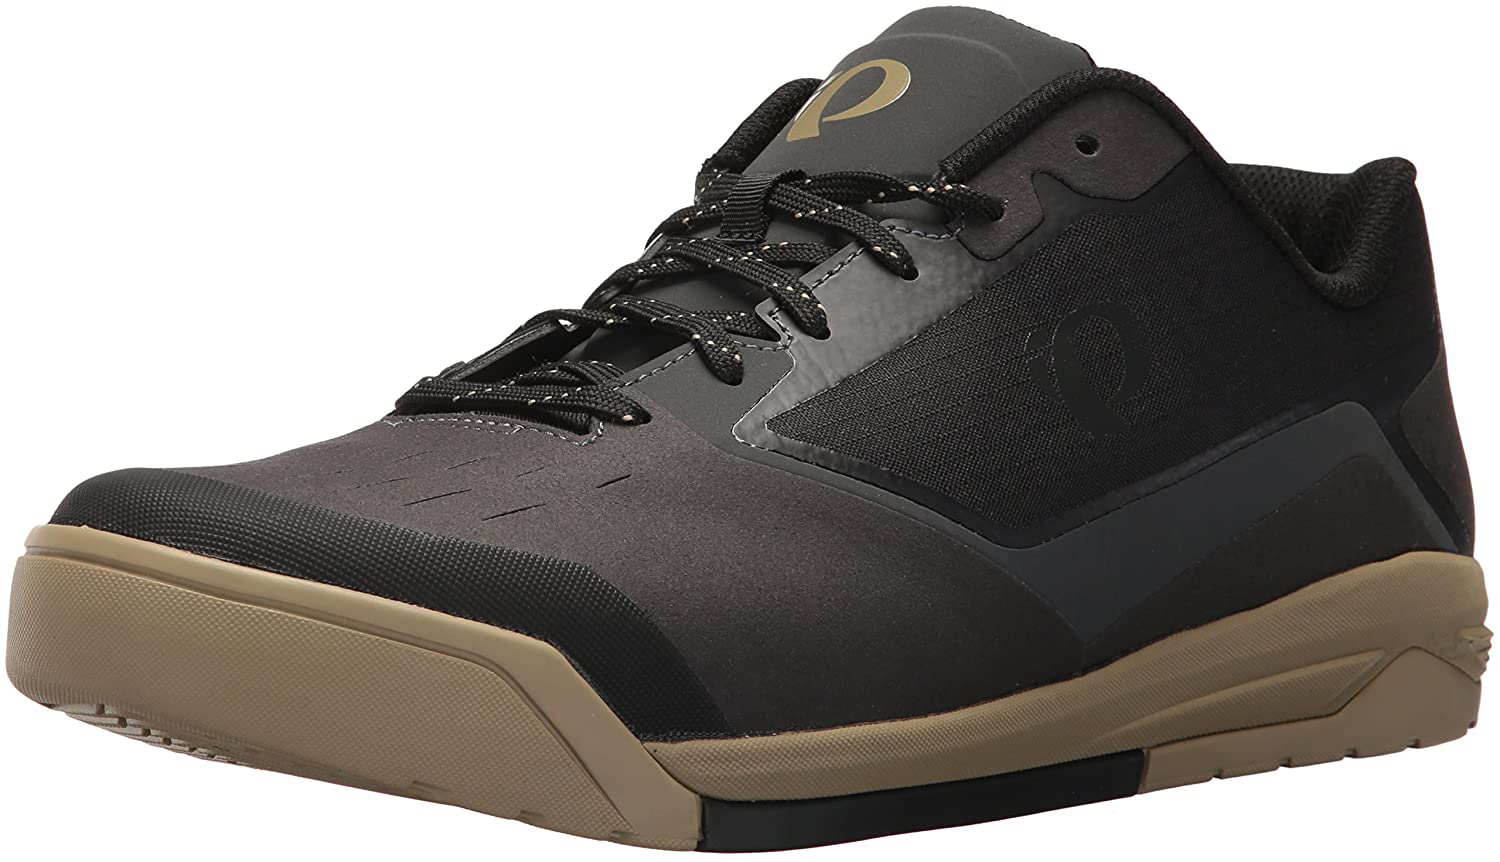 [パールイズミ] メンズ X-ALP Launch B072C8R9QN 49.0 M EU (14 US)|Black/Shadow Grey Black/Shadow Grey 49.0 M EU (14 US)